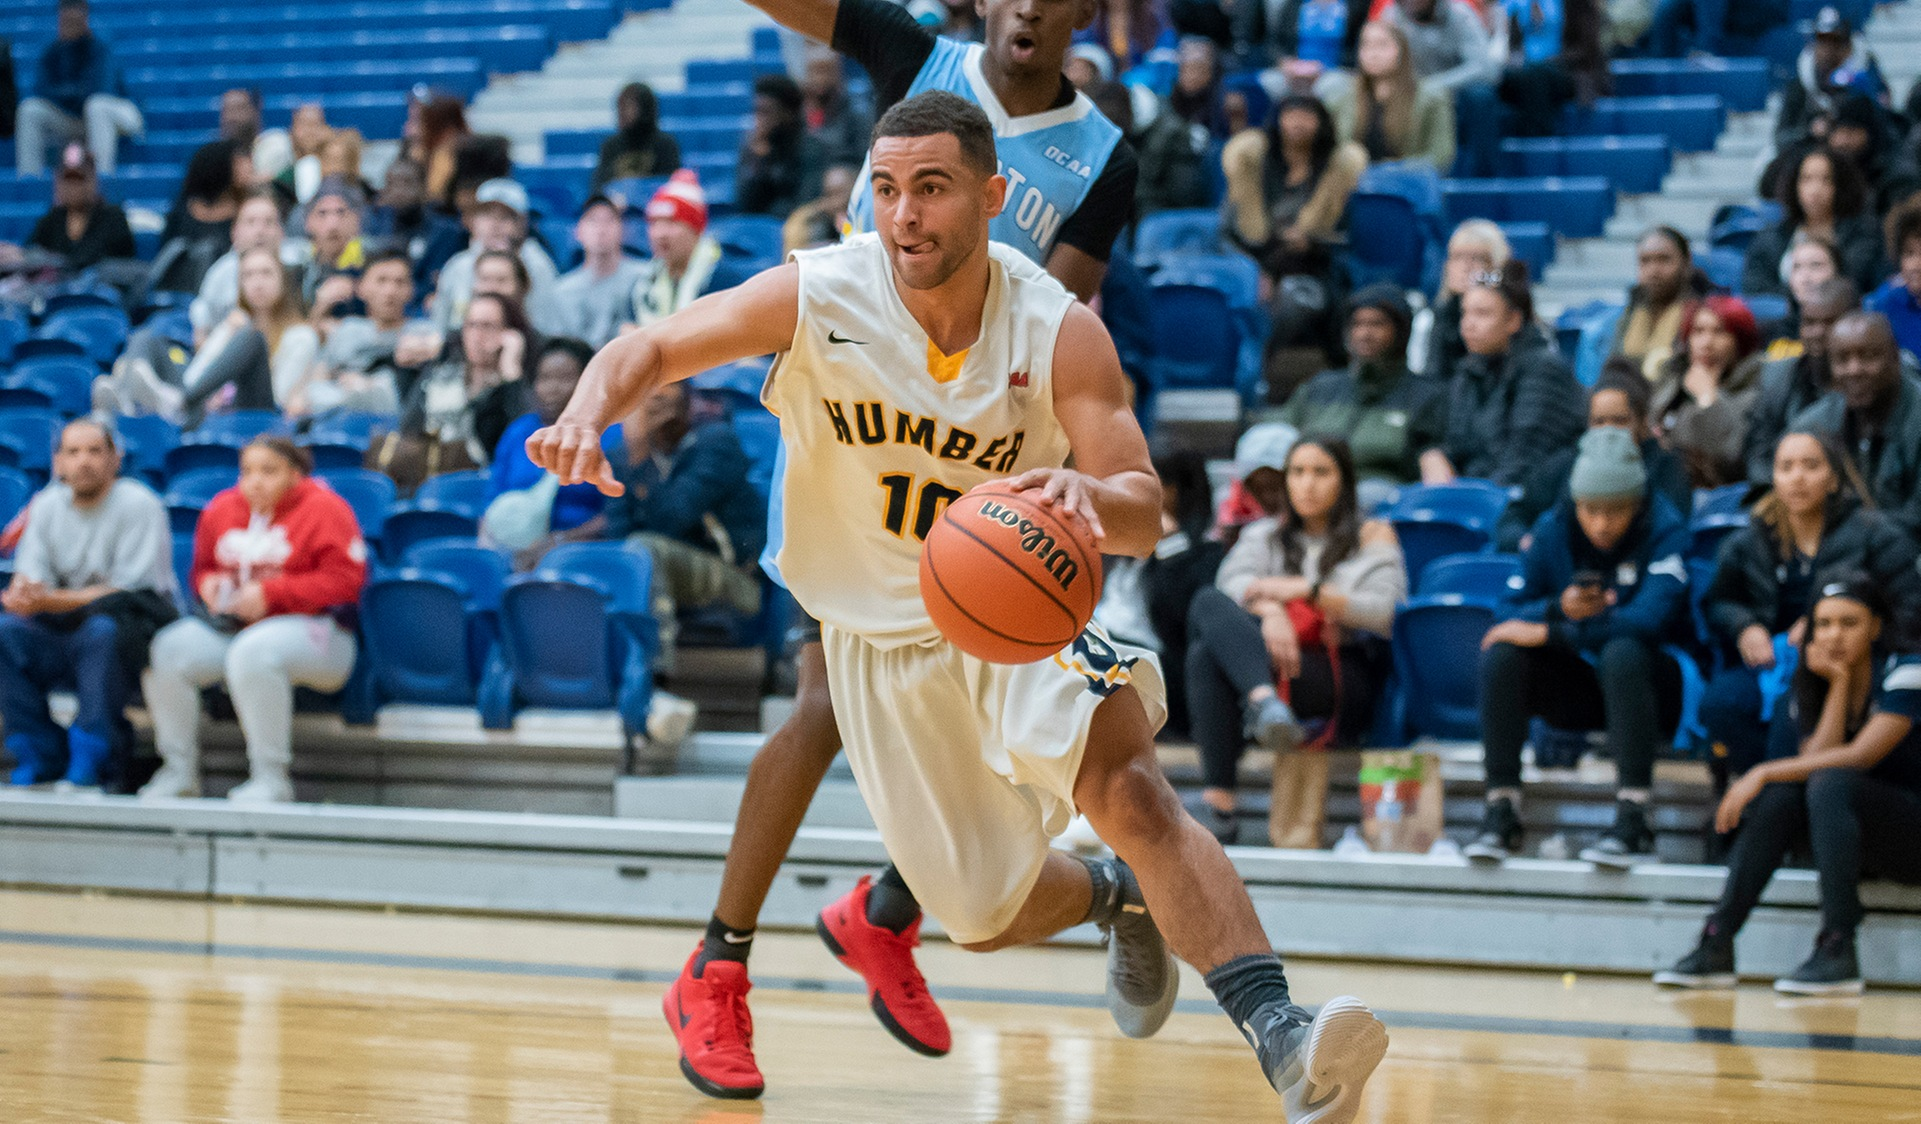 No. 3 MEN'S BASKETBALL HITS CENTURY MARK IN ROAD WIN OVER LAMBTON, 100-82